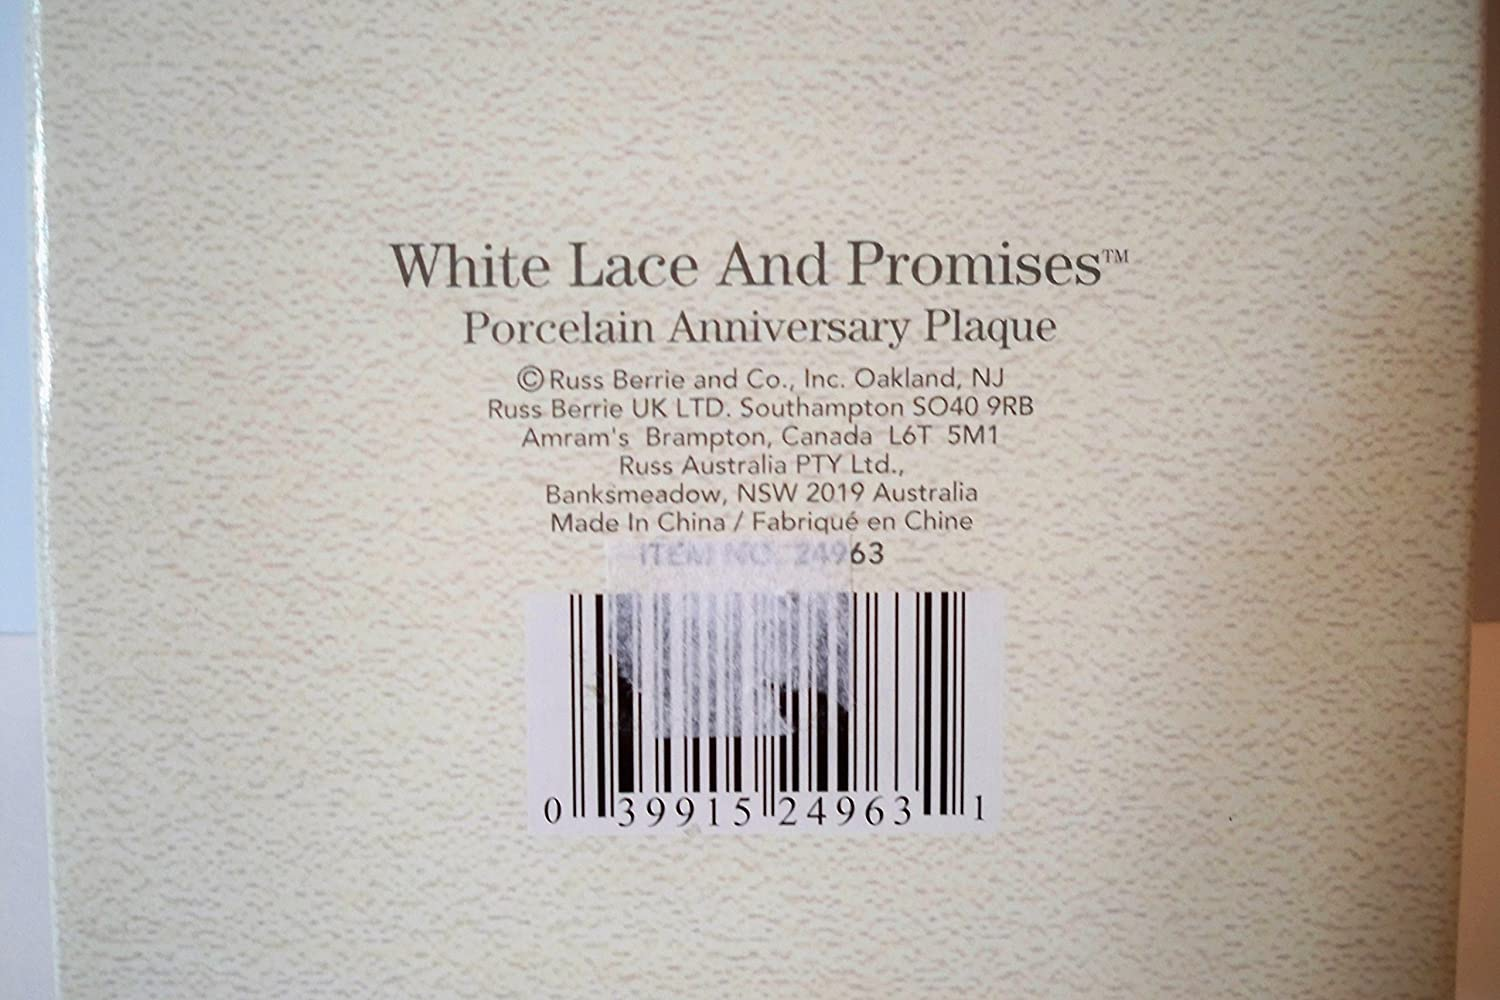 a72acfddd9 Amazon.com  Russ Berrie 40th Wedding Anniversary White Lace   Promises  Porcelain Heart Plaque  Home   Kitchen